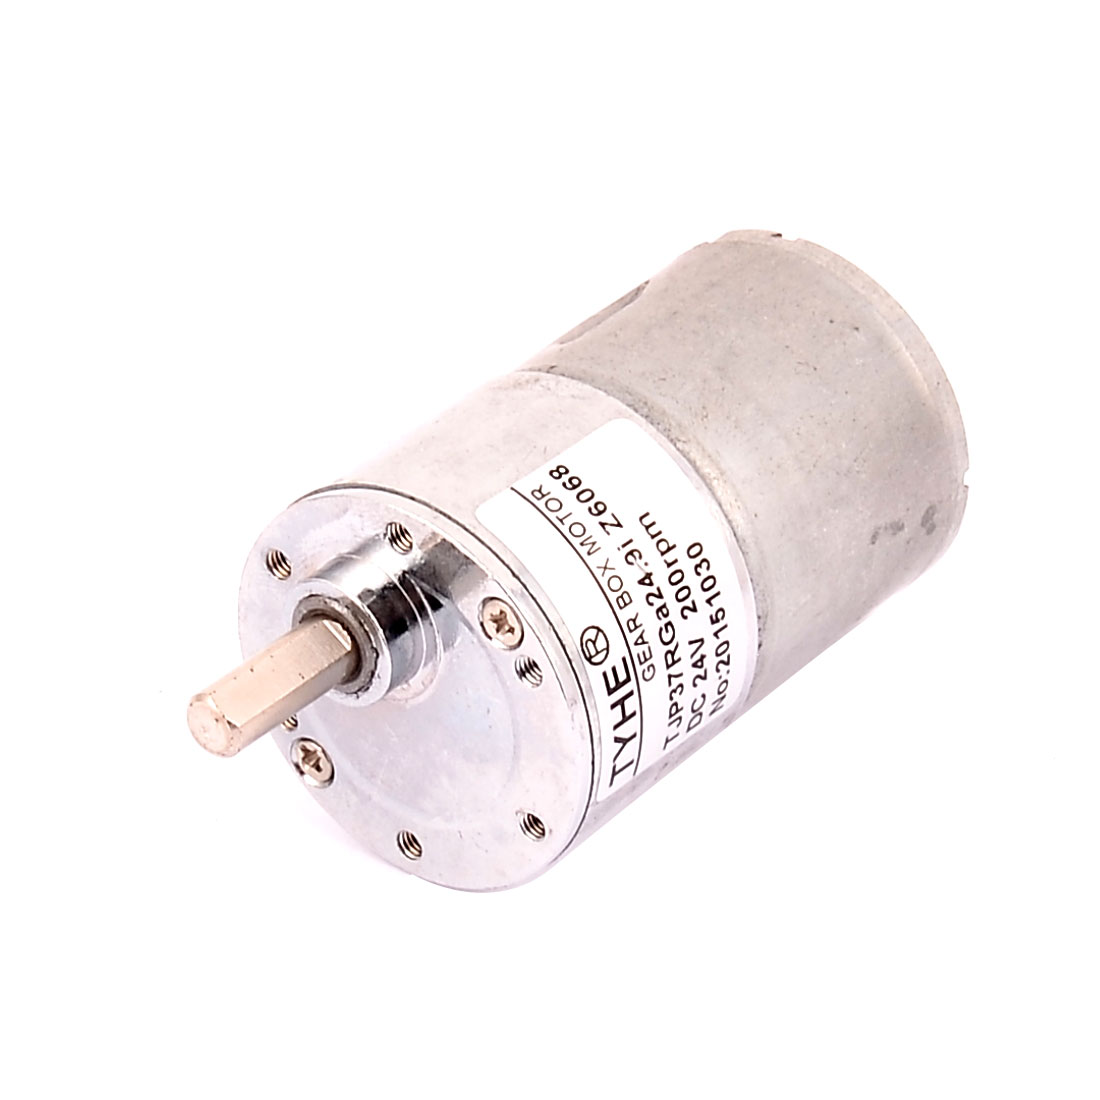 DC 24V 200RPM High Torque 6mm Dia Shaft Solder Cylindrical Gear Box Motor